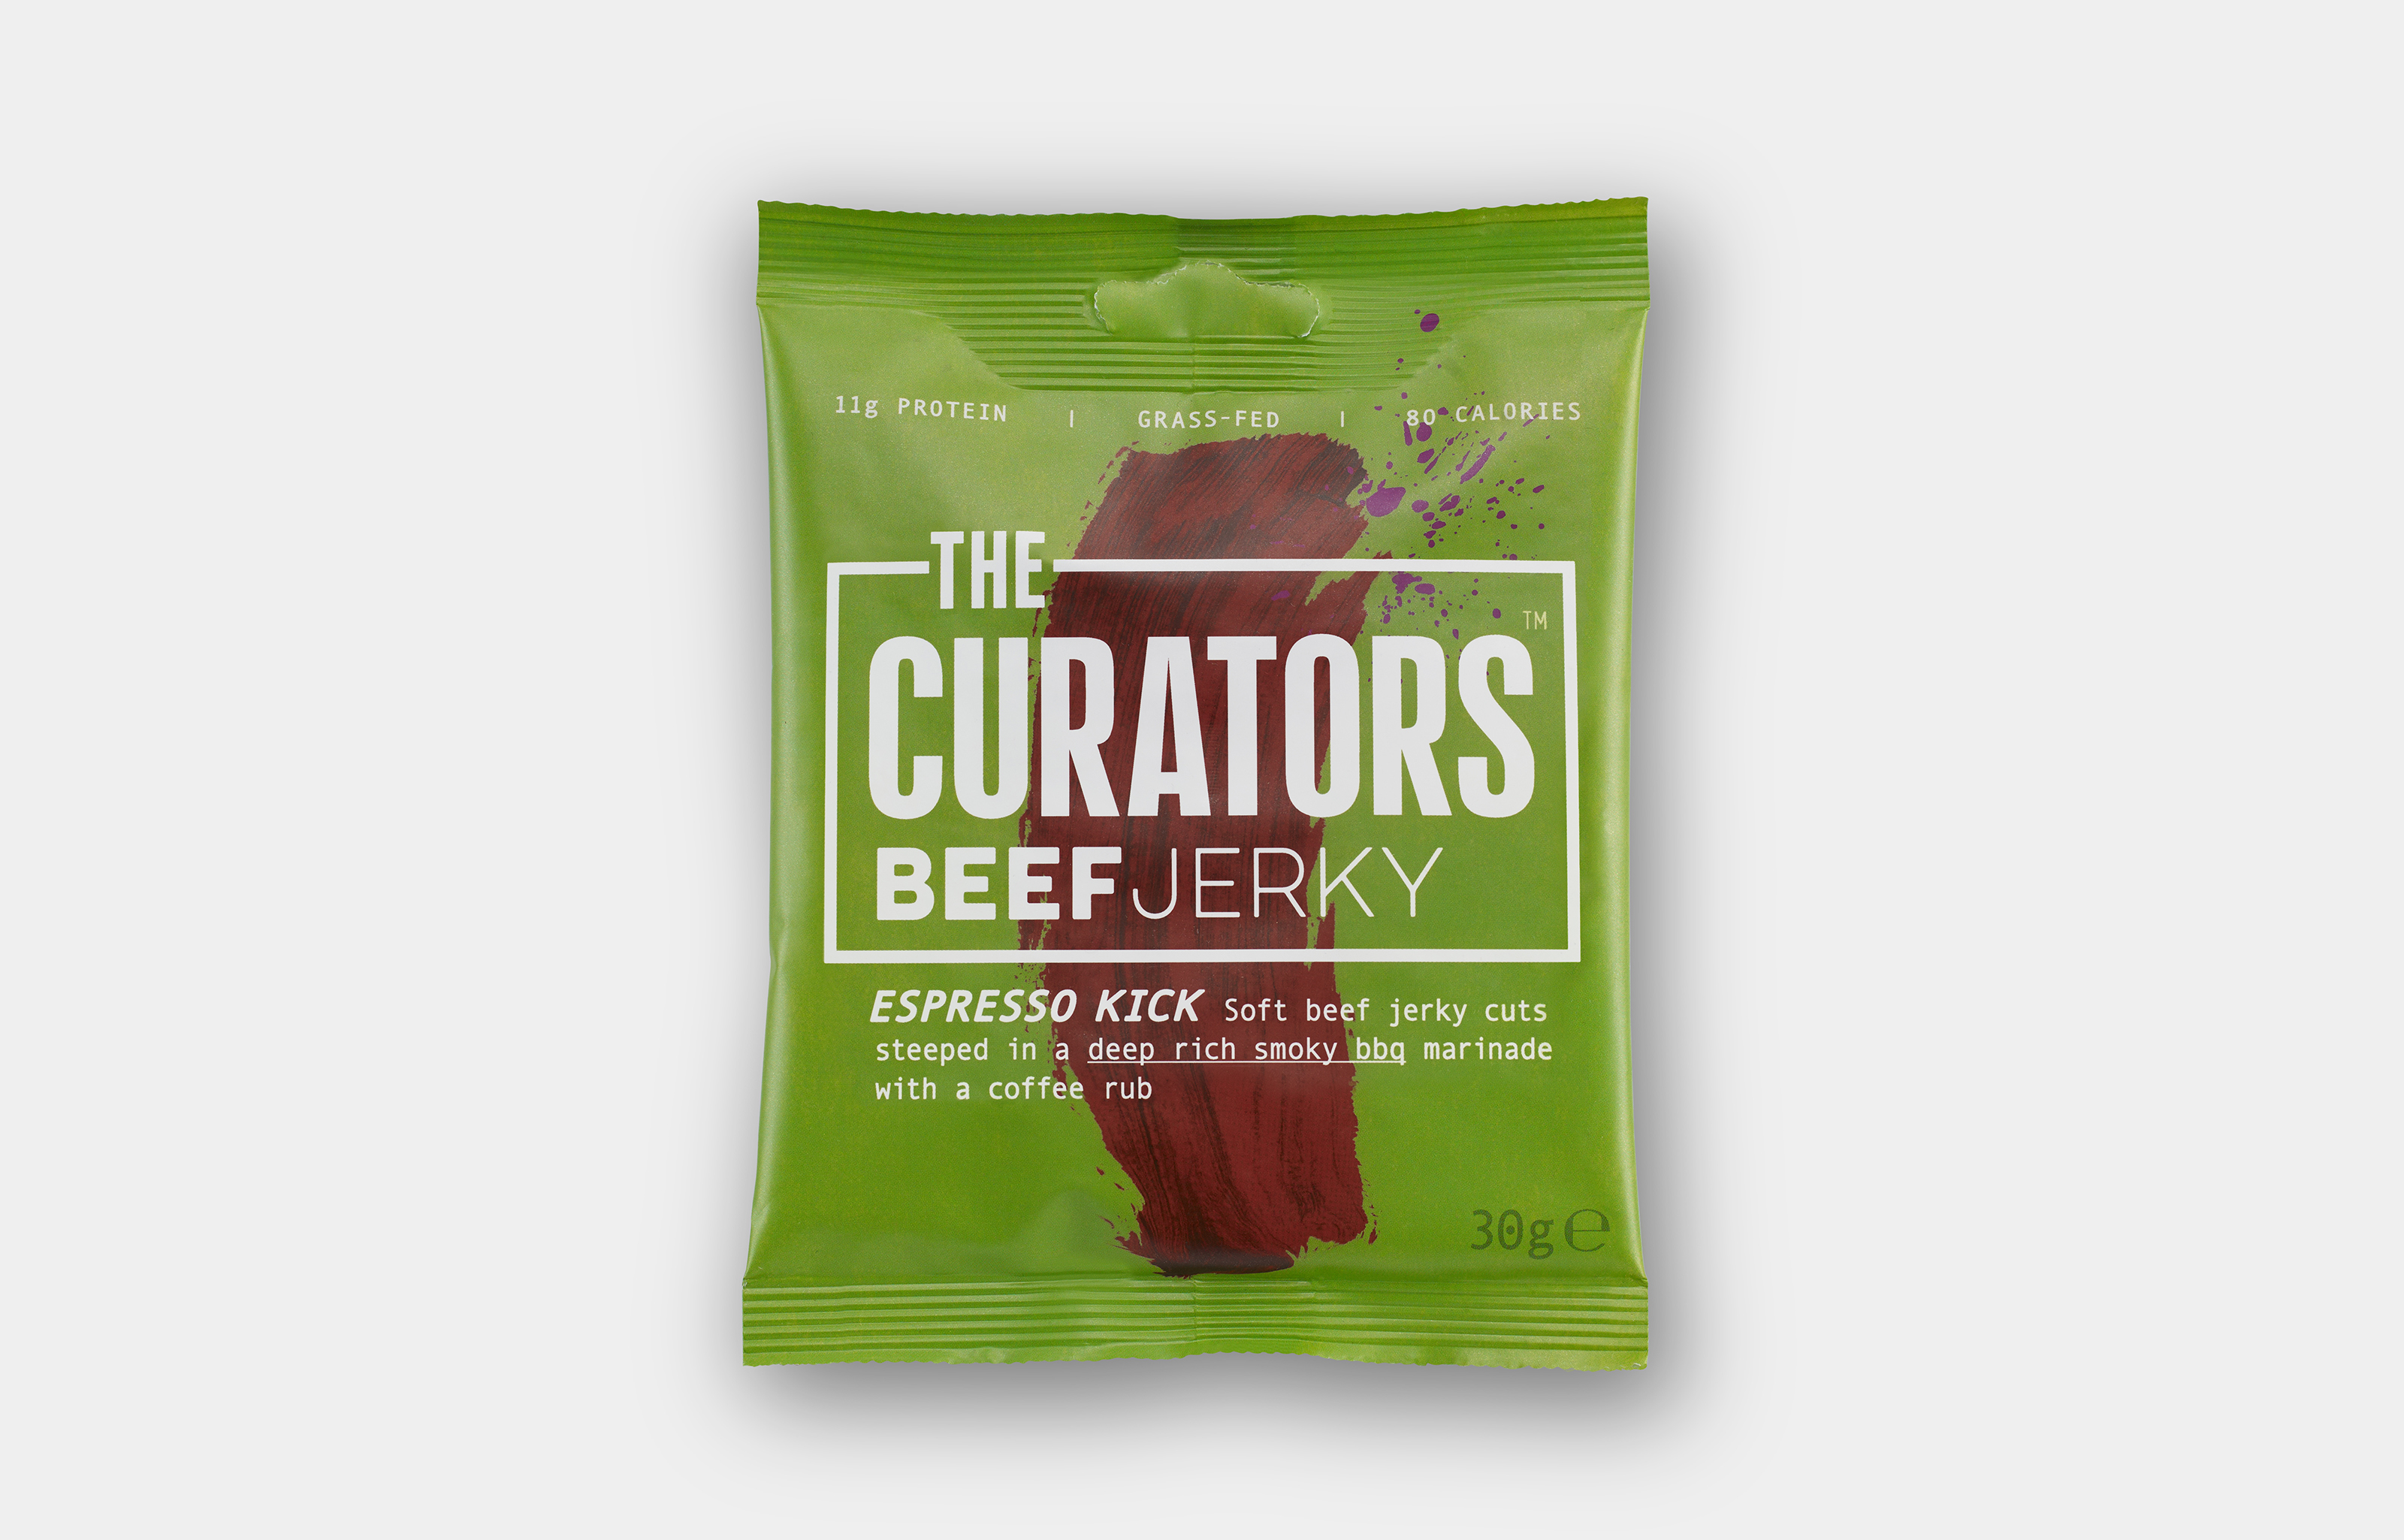 The  Curators Espresso Kick